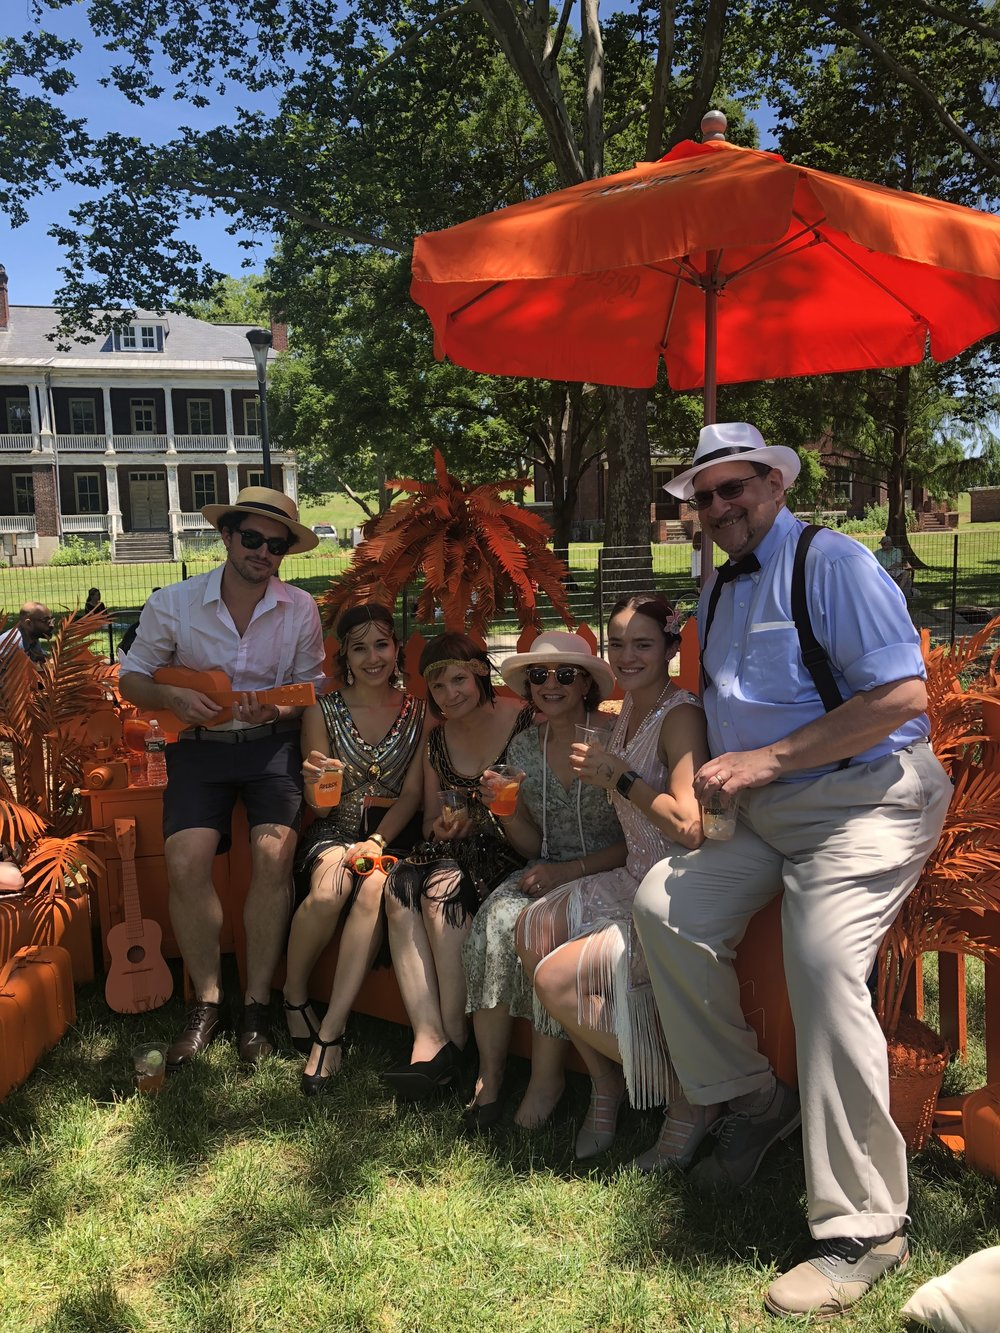 18 June 2018 - Jazz Age Lawn Party (one of my favorite days of the year)